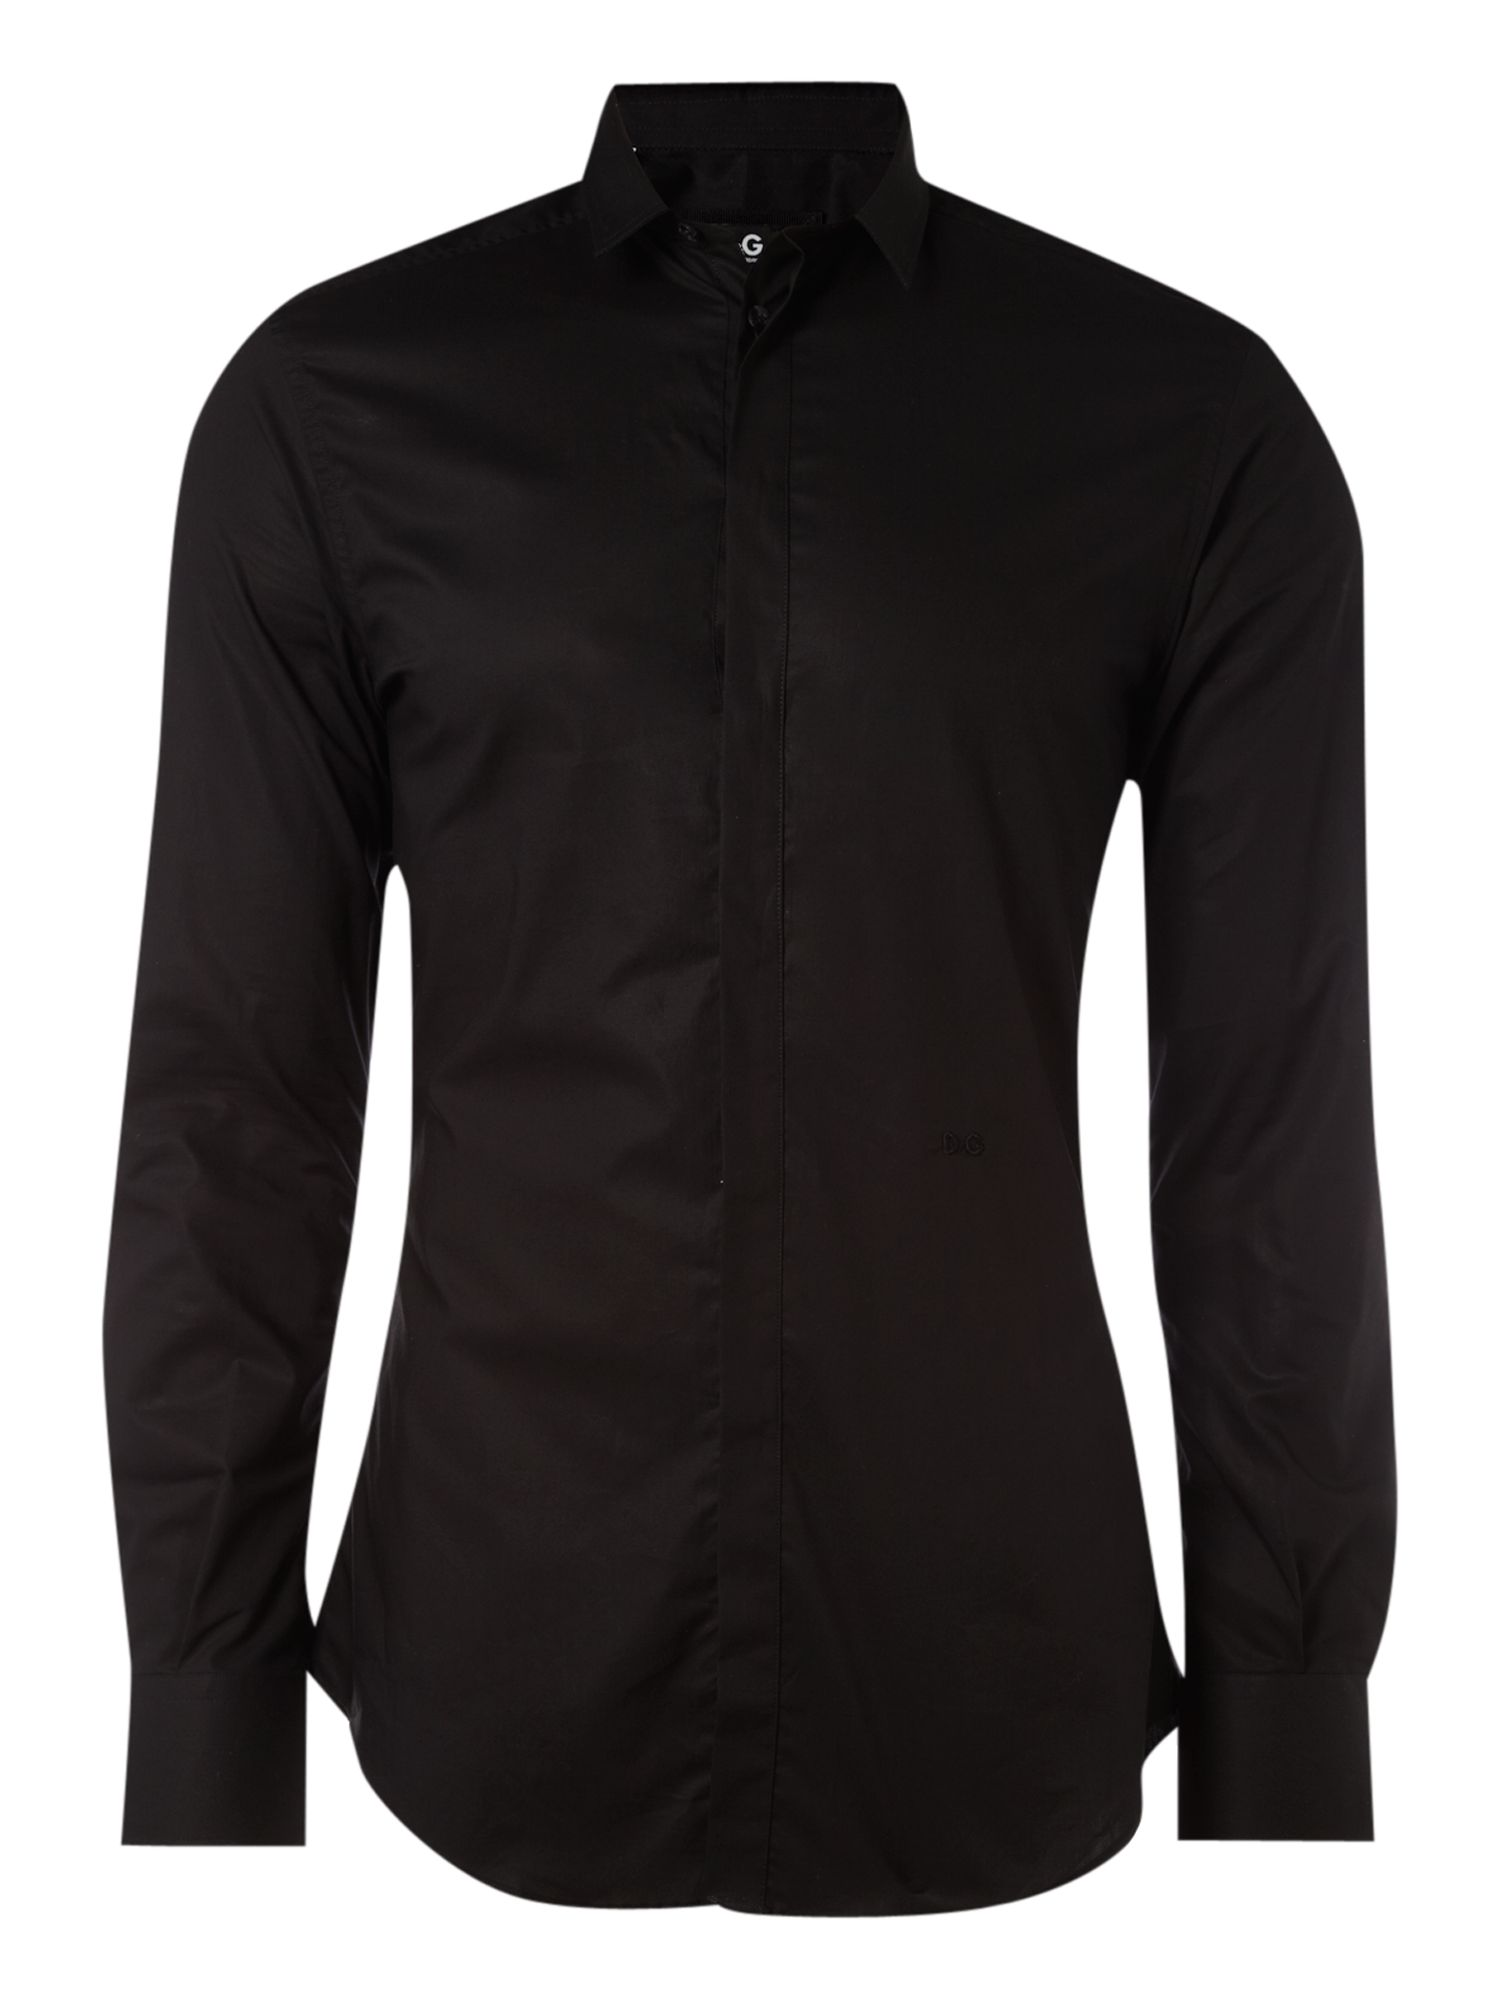 Unique Bargains Men's Printed Slim Fit Cotton Button Up Shirt Black (Size S / 36) Unique Bargains Men's Long Sleeve Button Up Shirt With Stripe Trim White (Size S / 36) Please note, this item ships from an international third party seller and is expected to be delivered within 30 days from purchase.